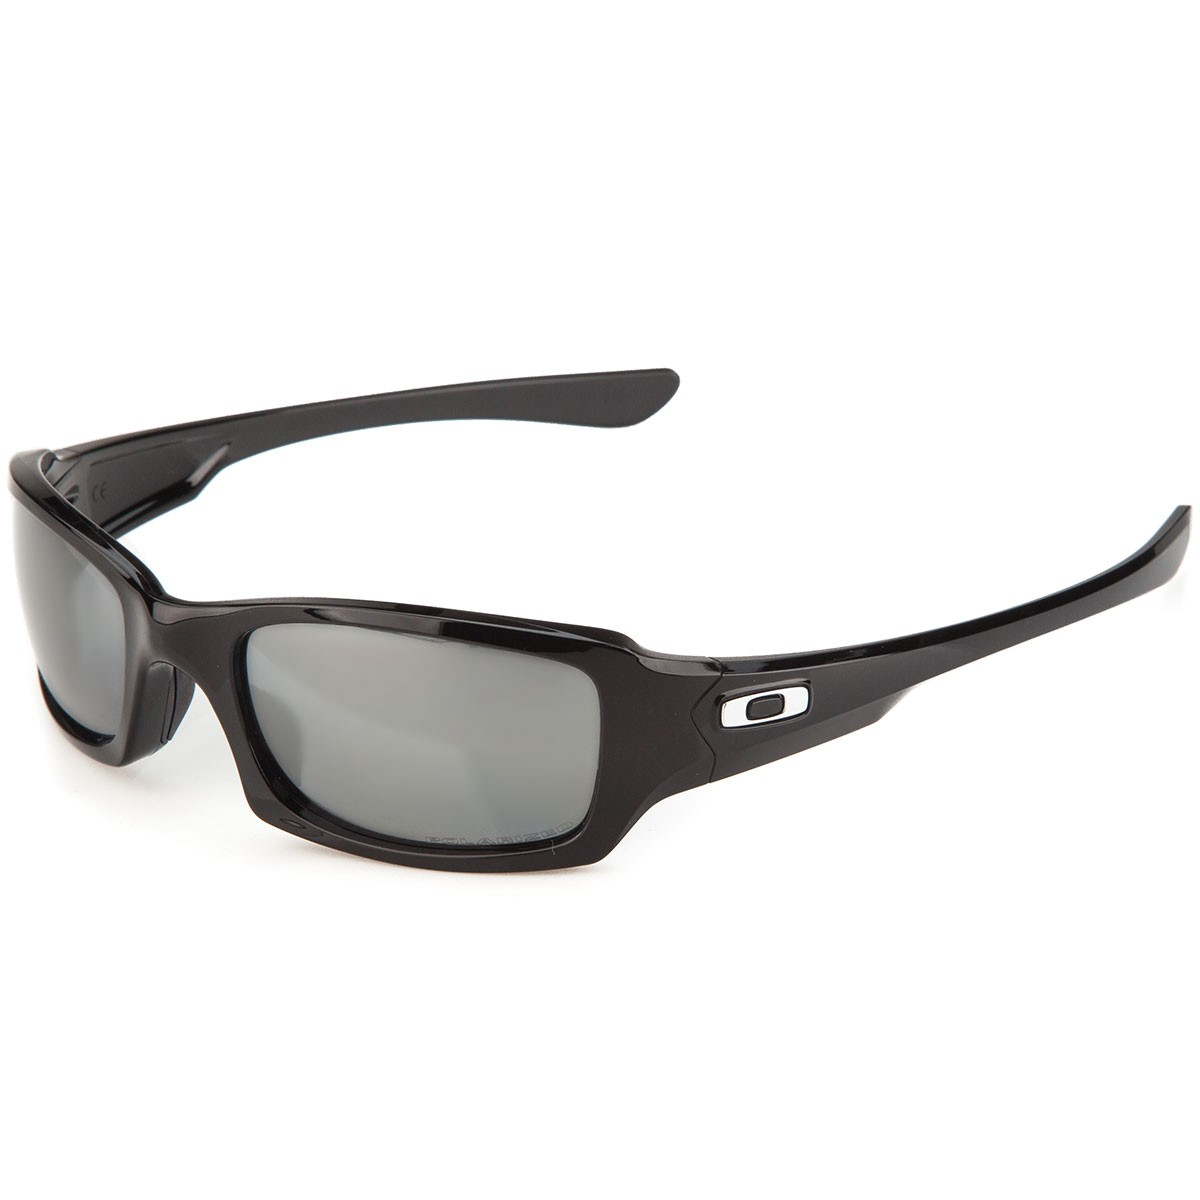 b4c6173816 Oakley Fives Sunglasses Polished Black « Heritage Malta